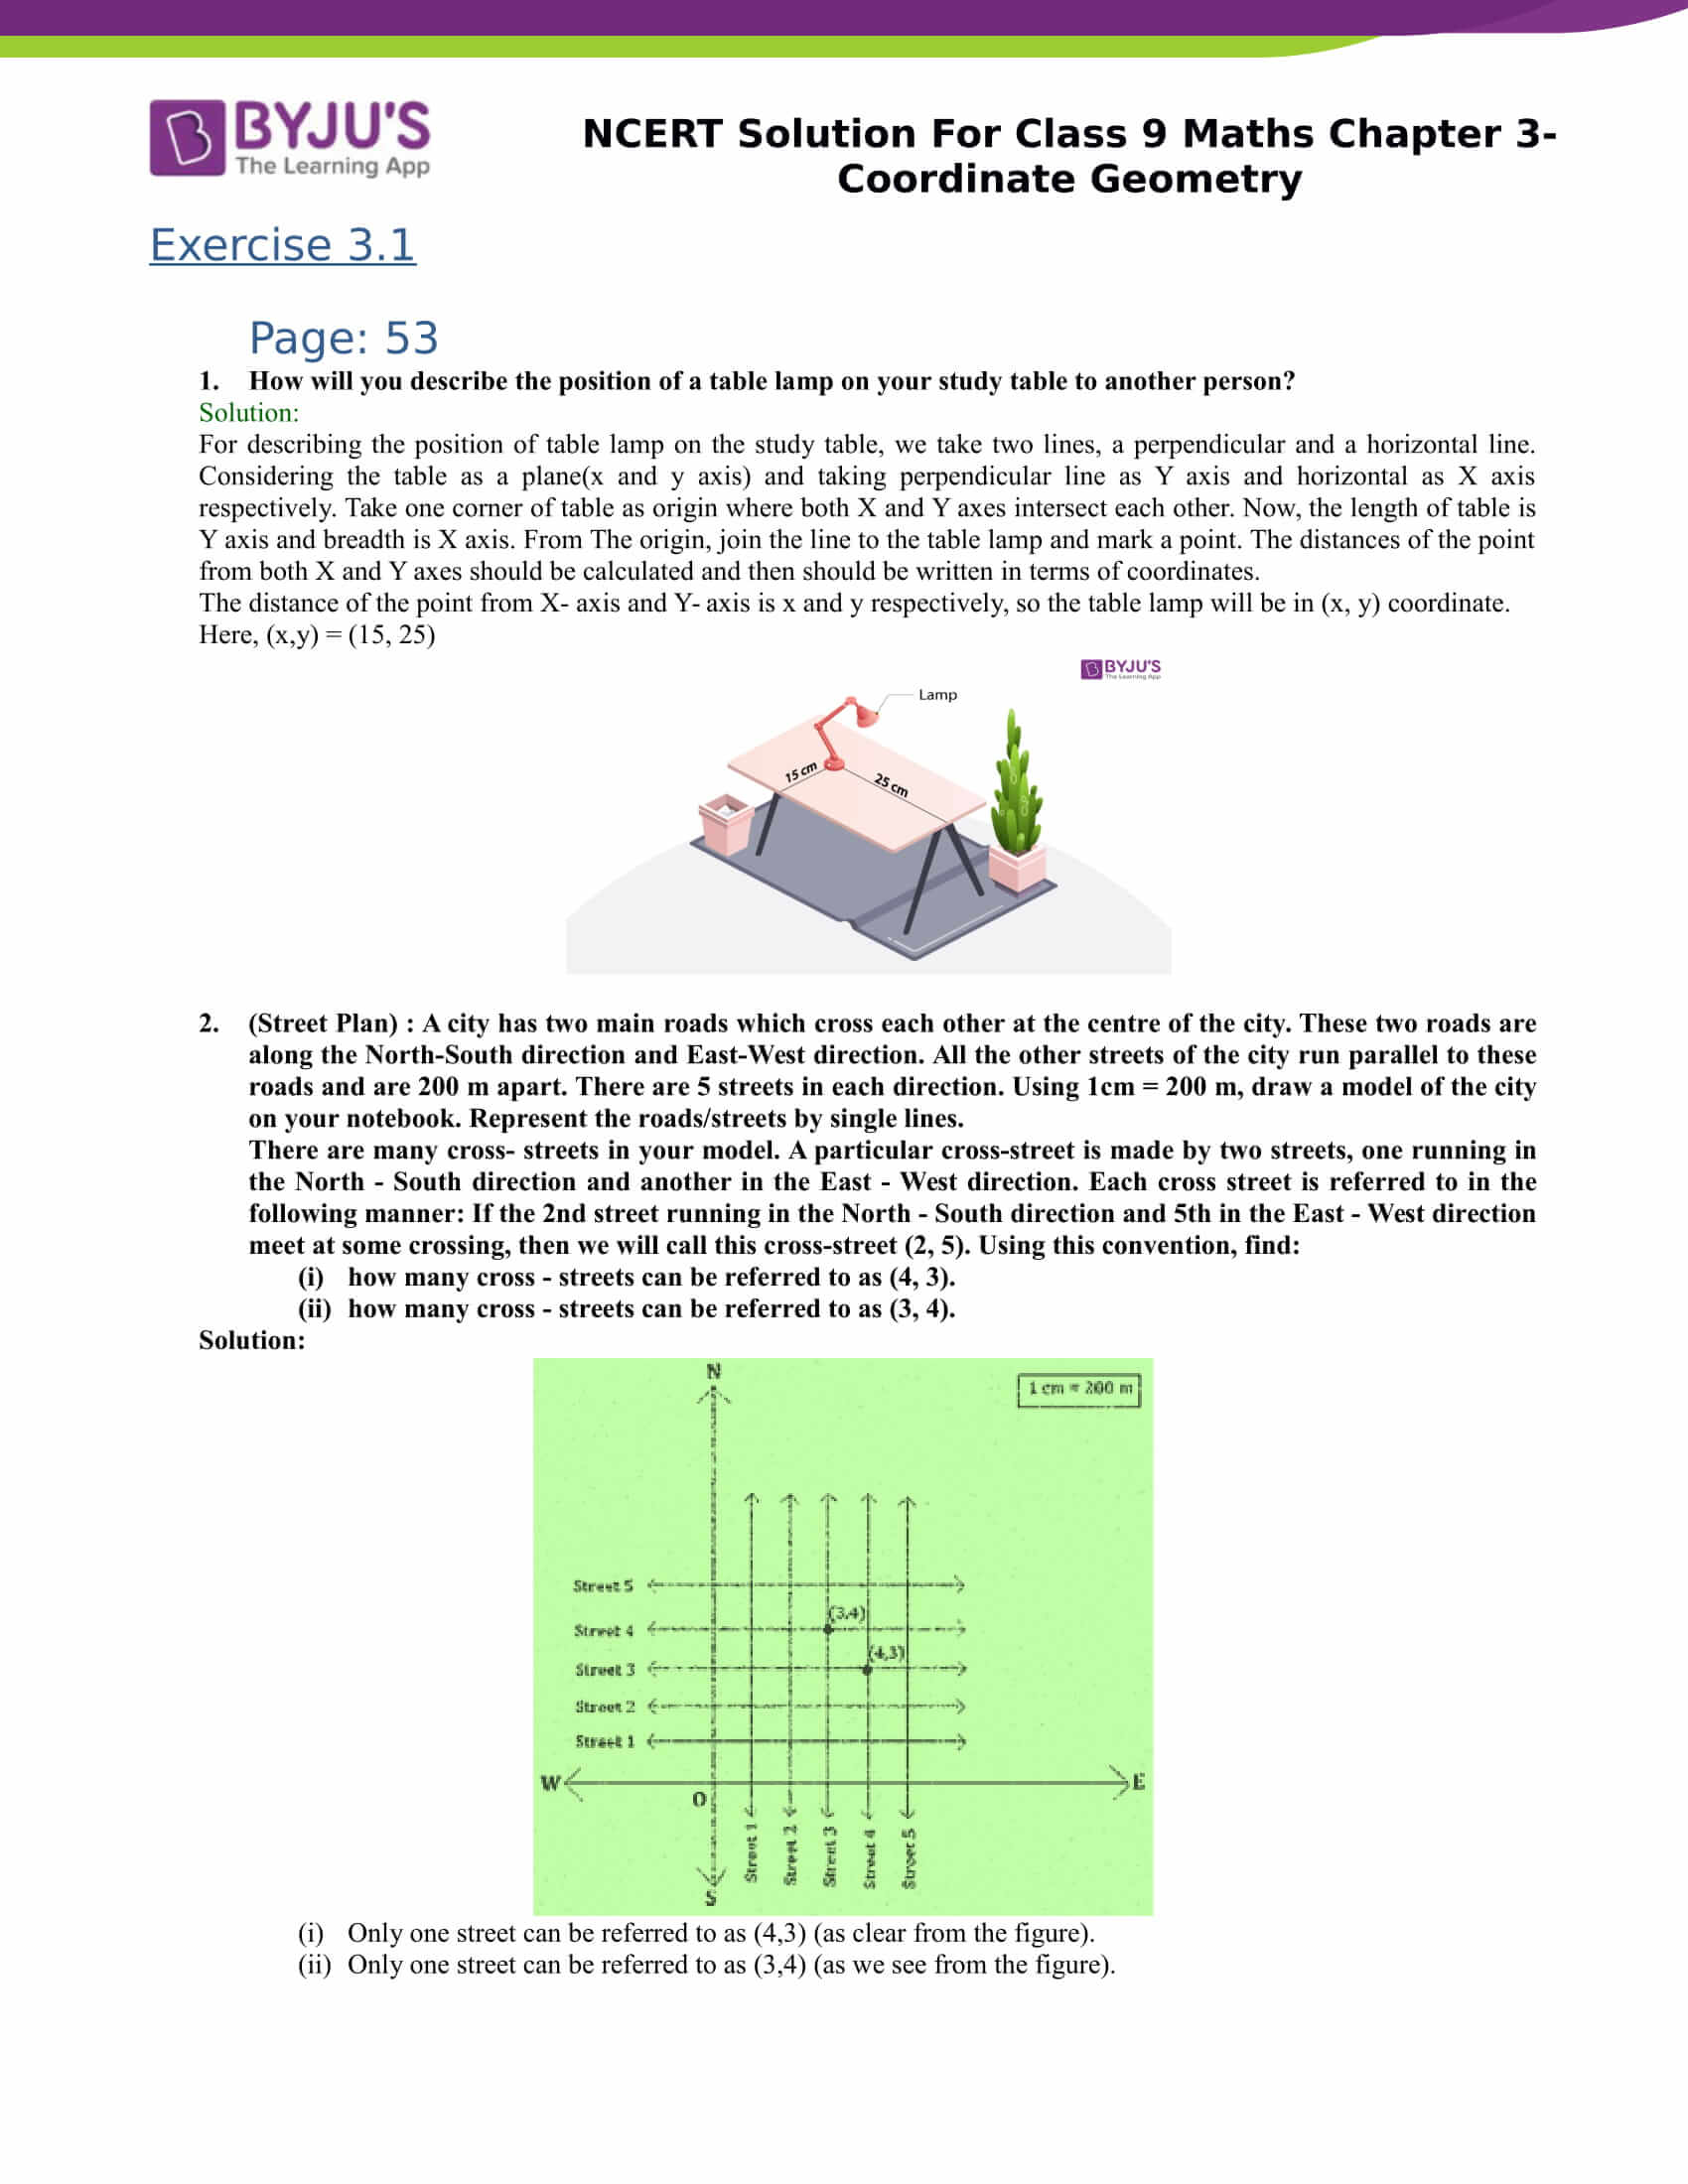 Get NCERT Solutions for Class 9 Maths Chapter 3-Coordinate Geometry